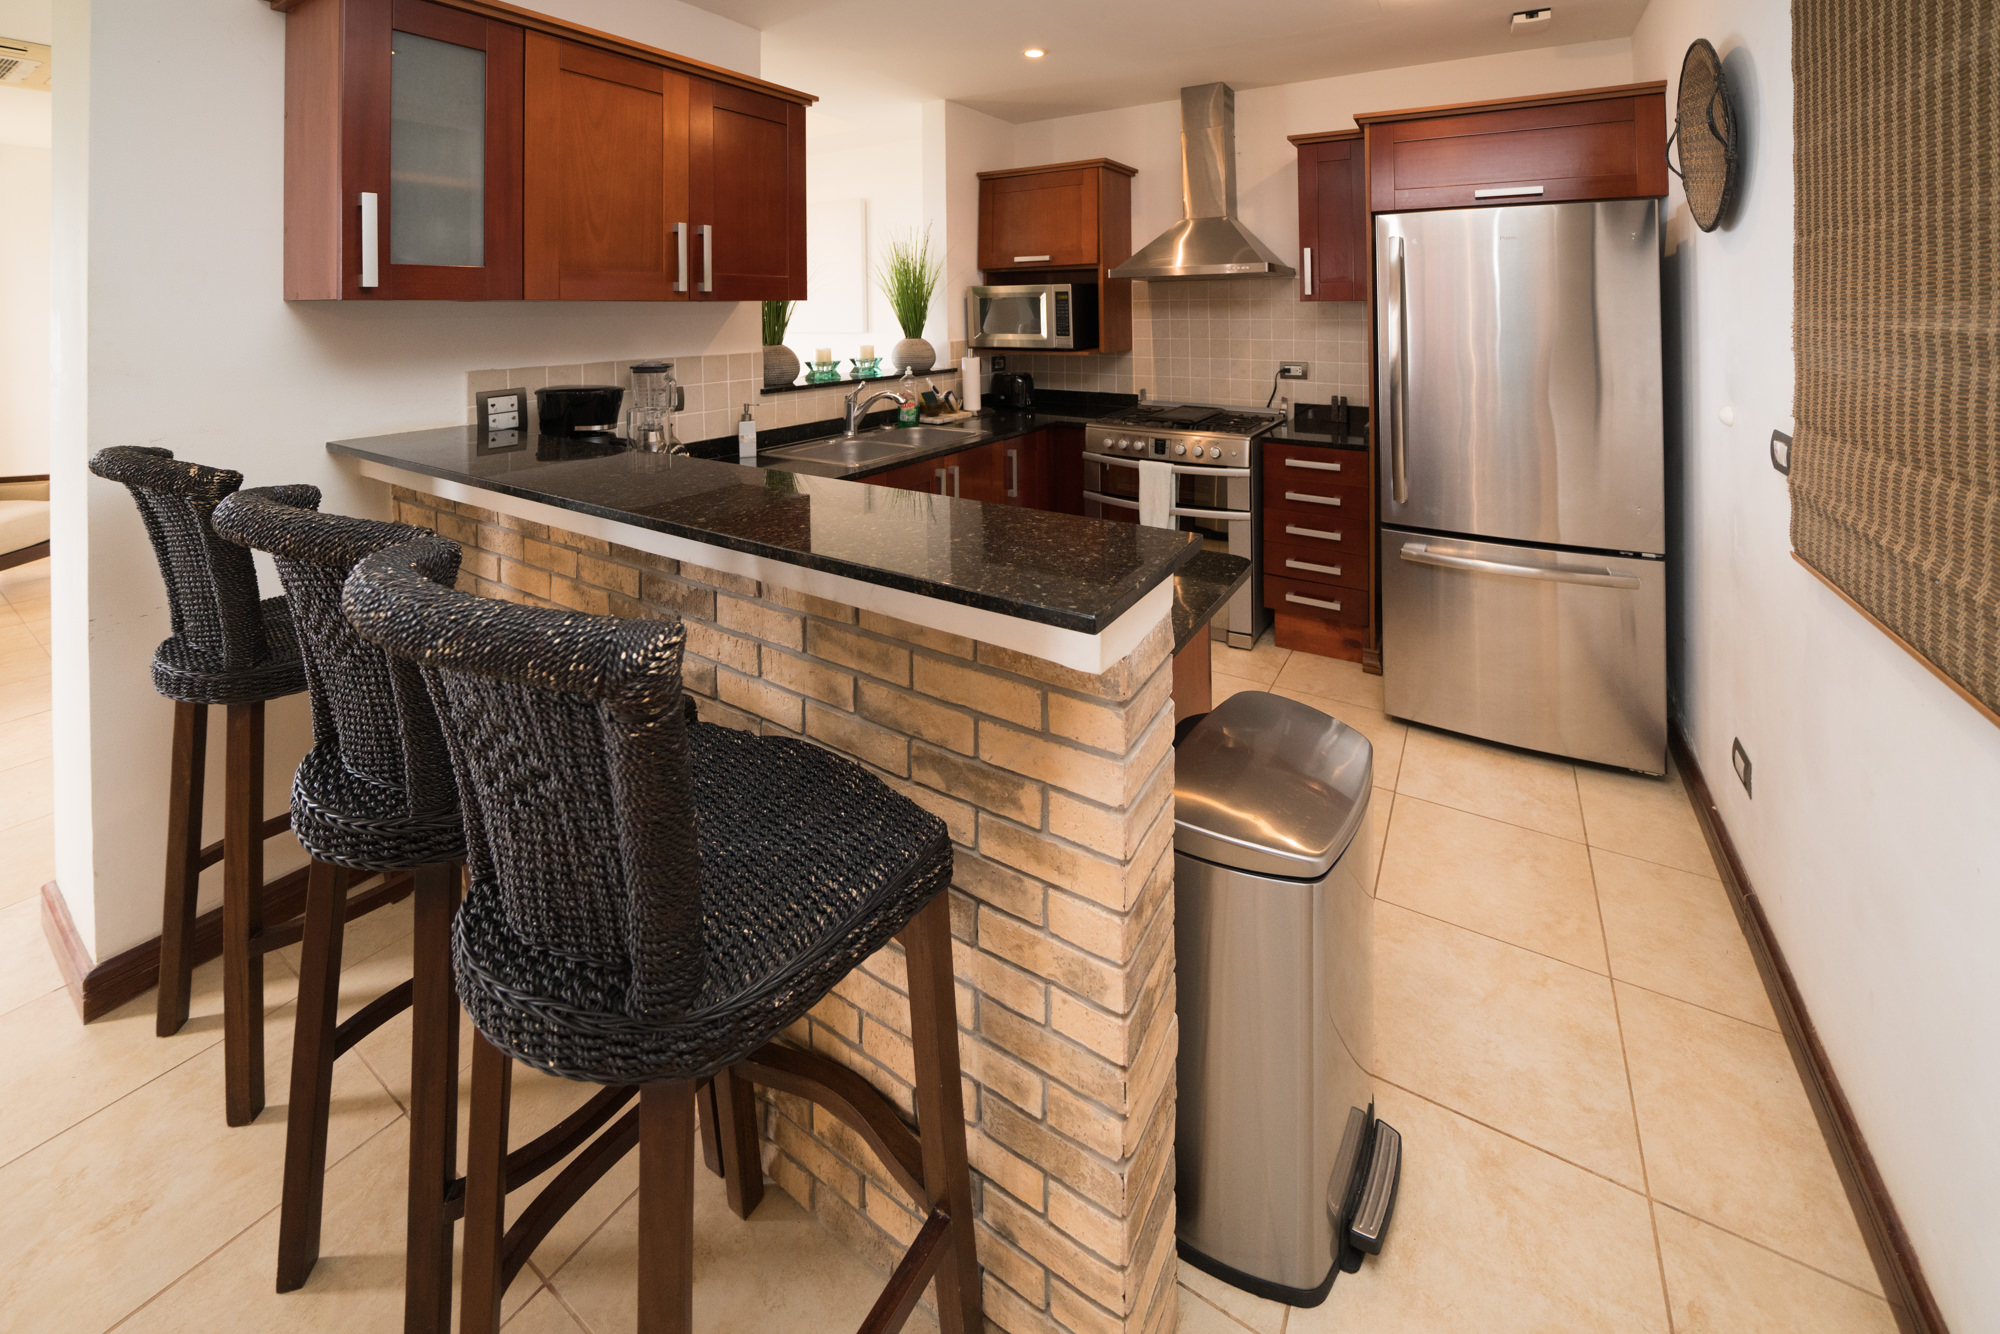 Stainless steel kitchen appliances give a touch of class